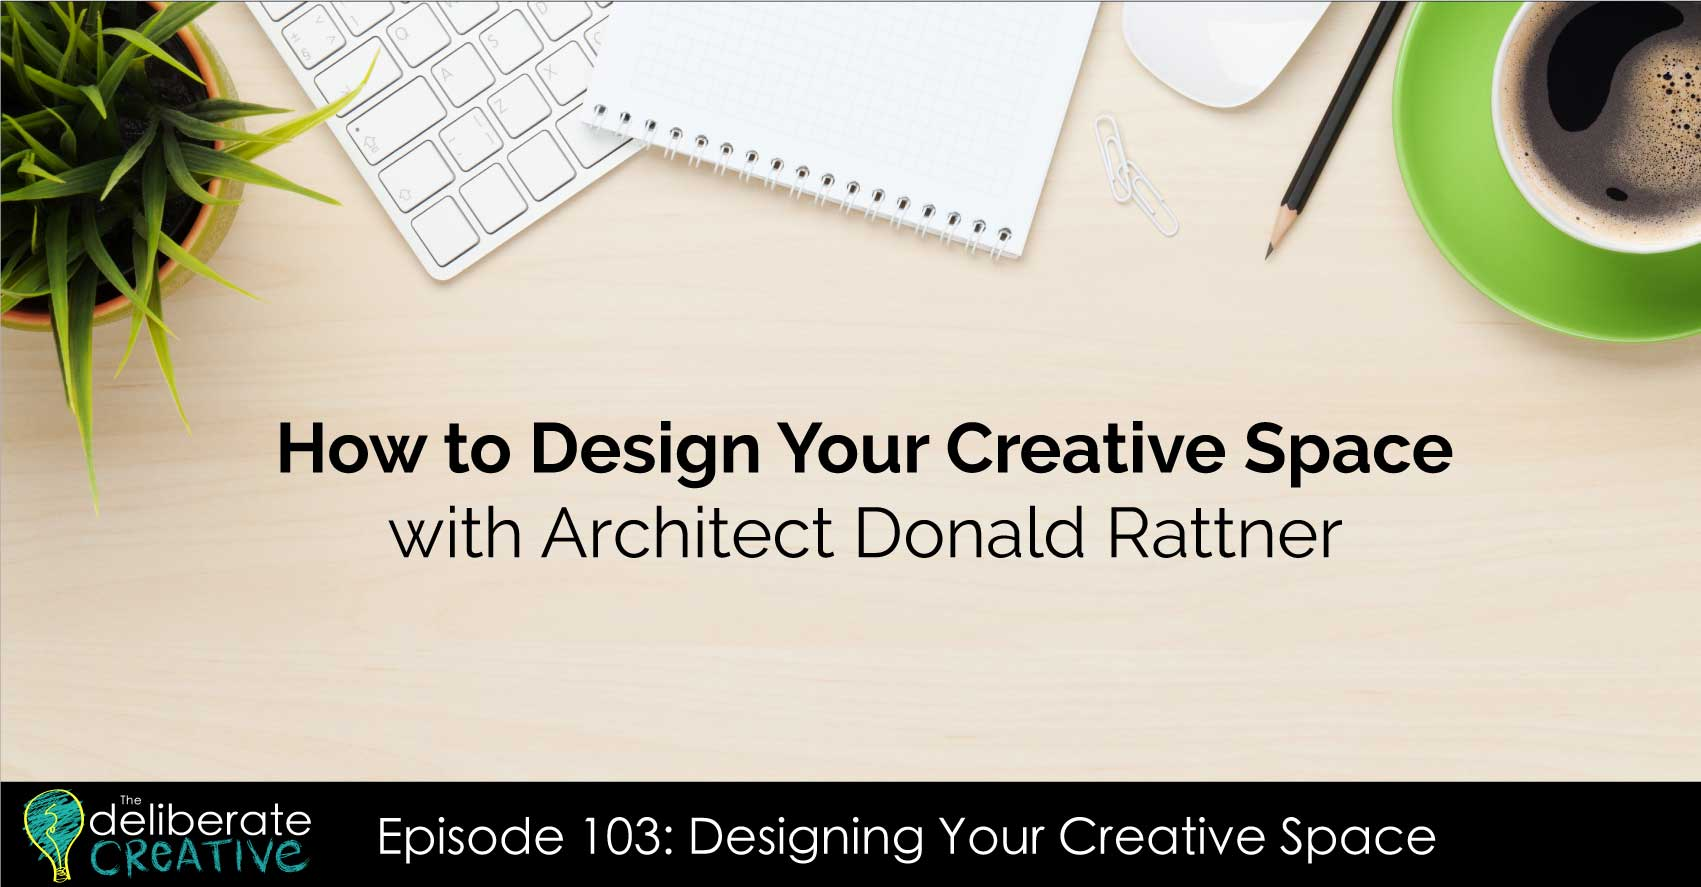 The Deliberate Creative Podcast Episode 103